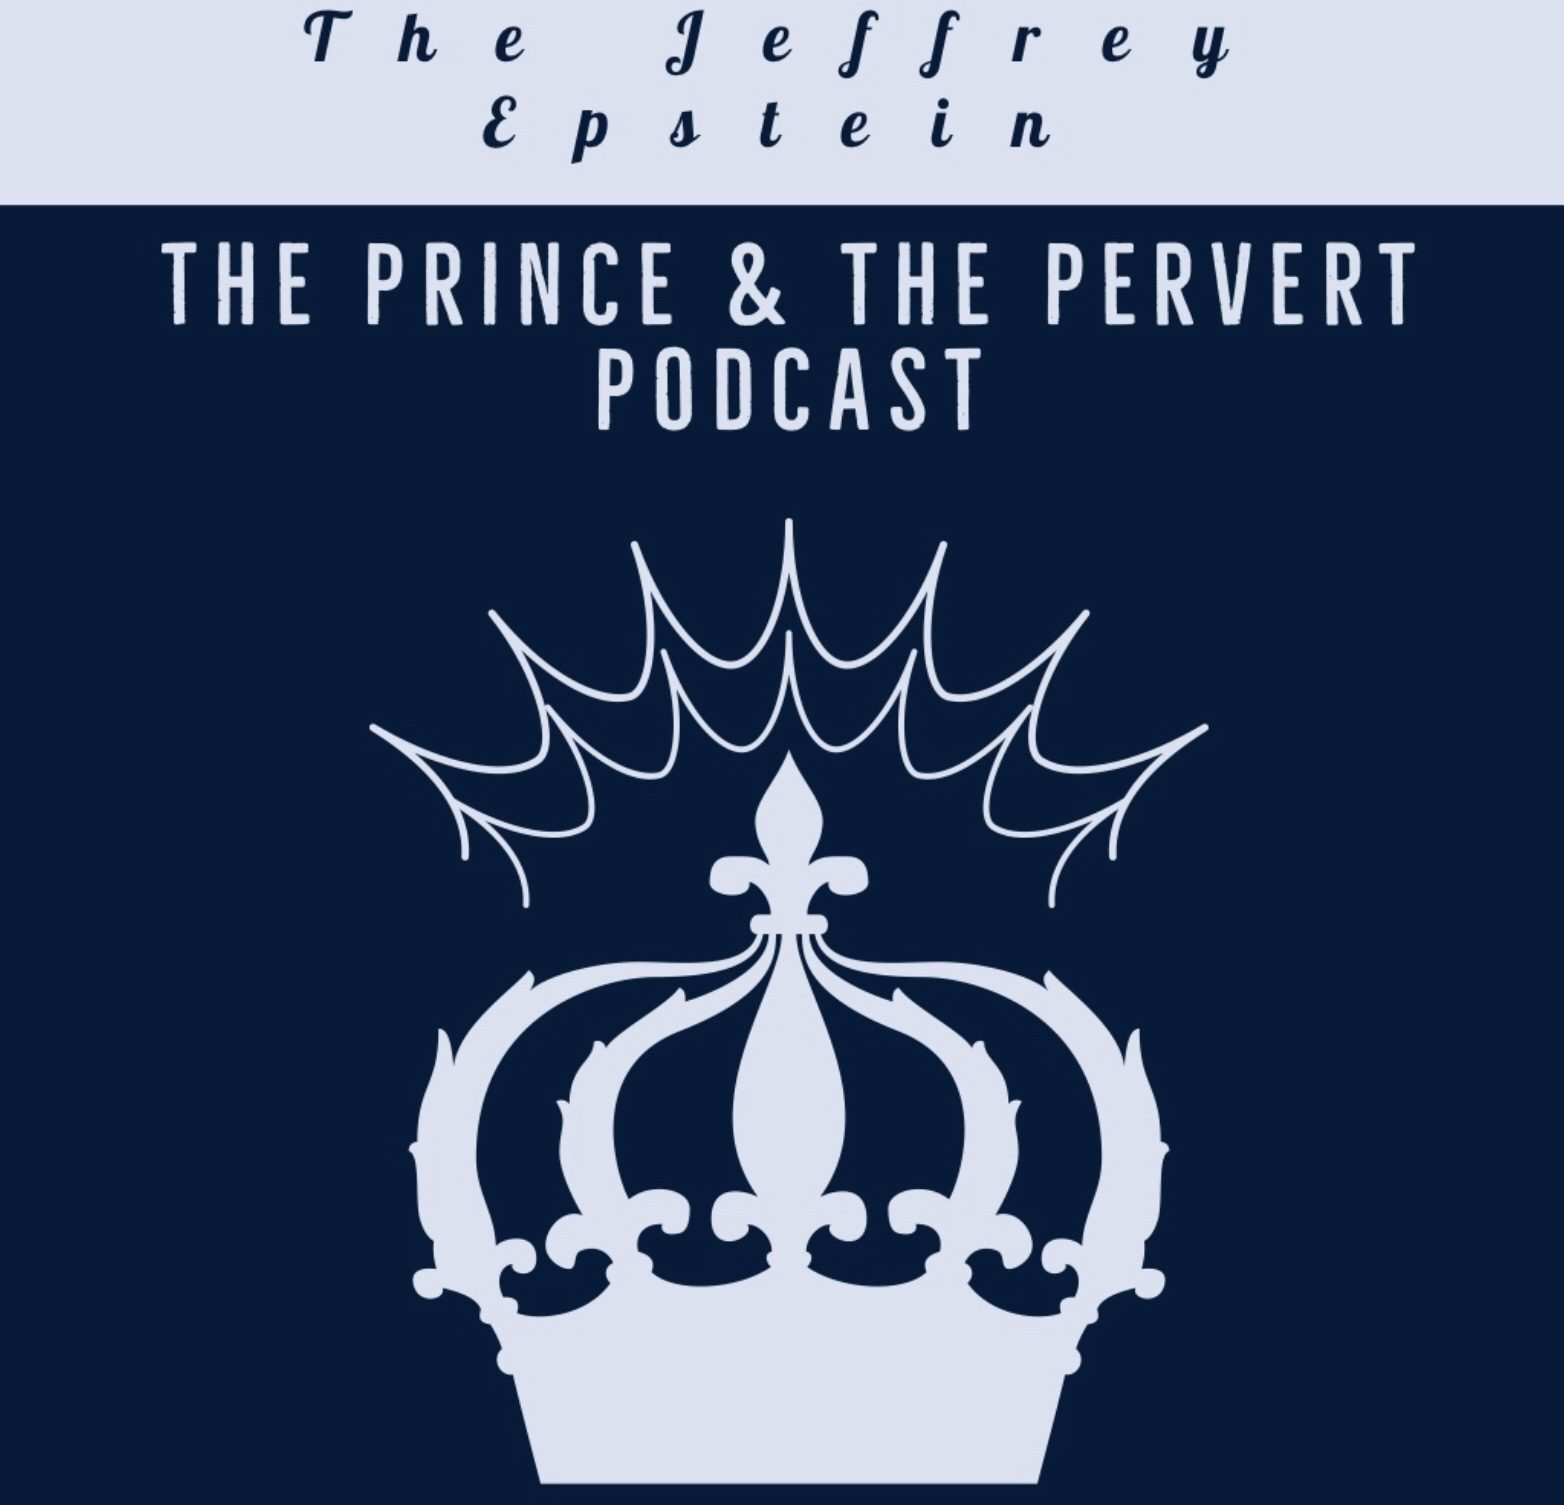 The Jeffrey Epstein, the Prince & the Pervert Podcast